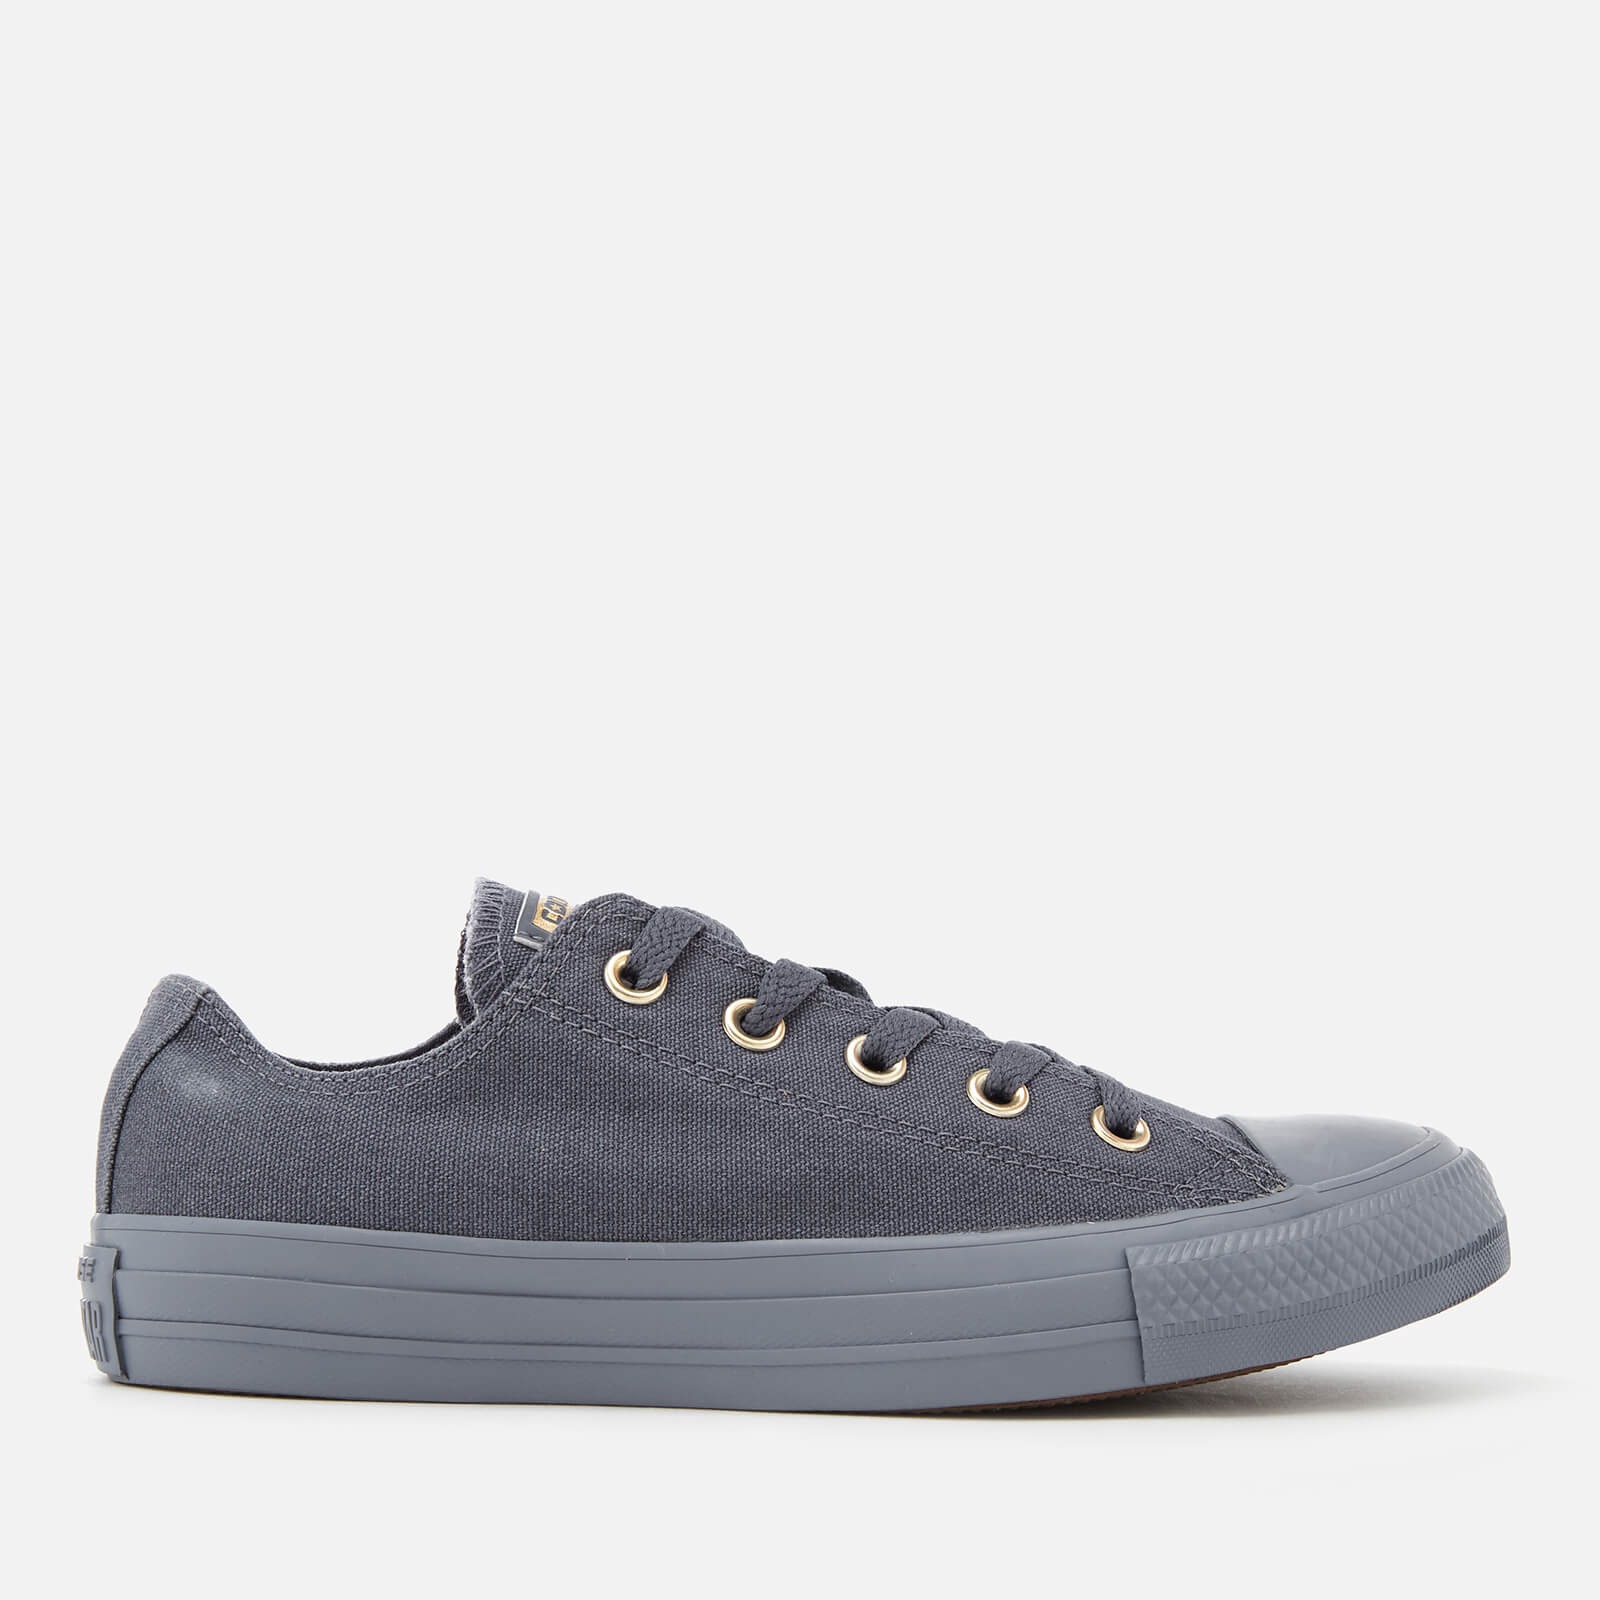 8cc115cbcbe Converse Women s Chuck Taylor All Star Ox Trainers - Light Carbon ...